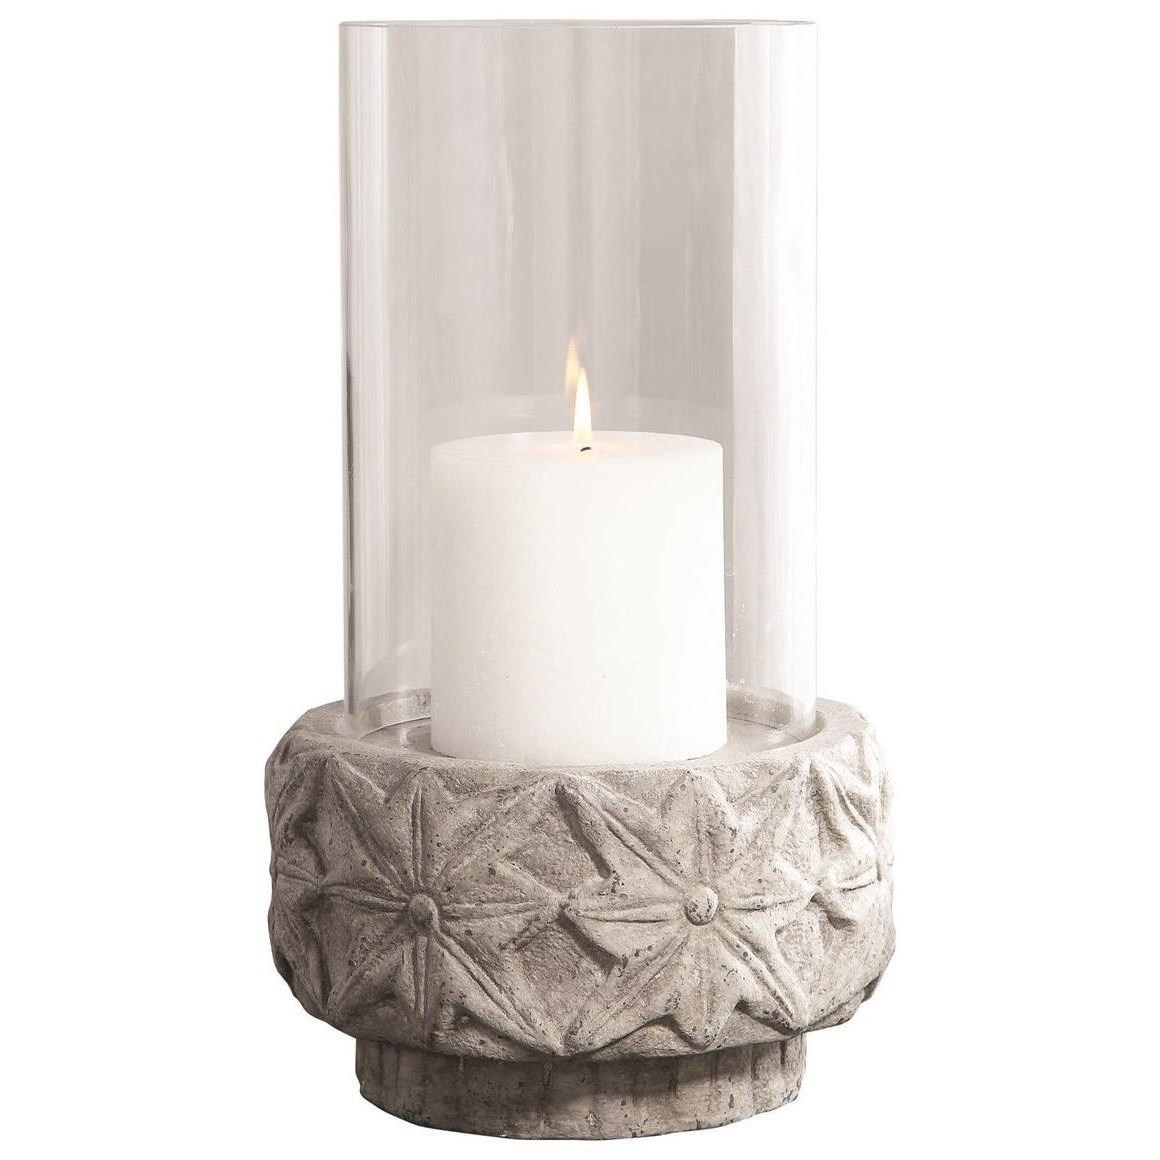 Accessories - Candle Holders Capistrano Concrete Candleholder by Uttermost at Suburban Furniture